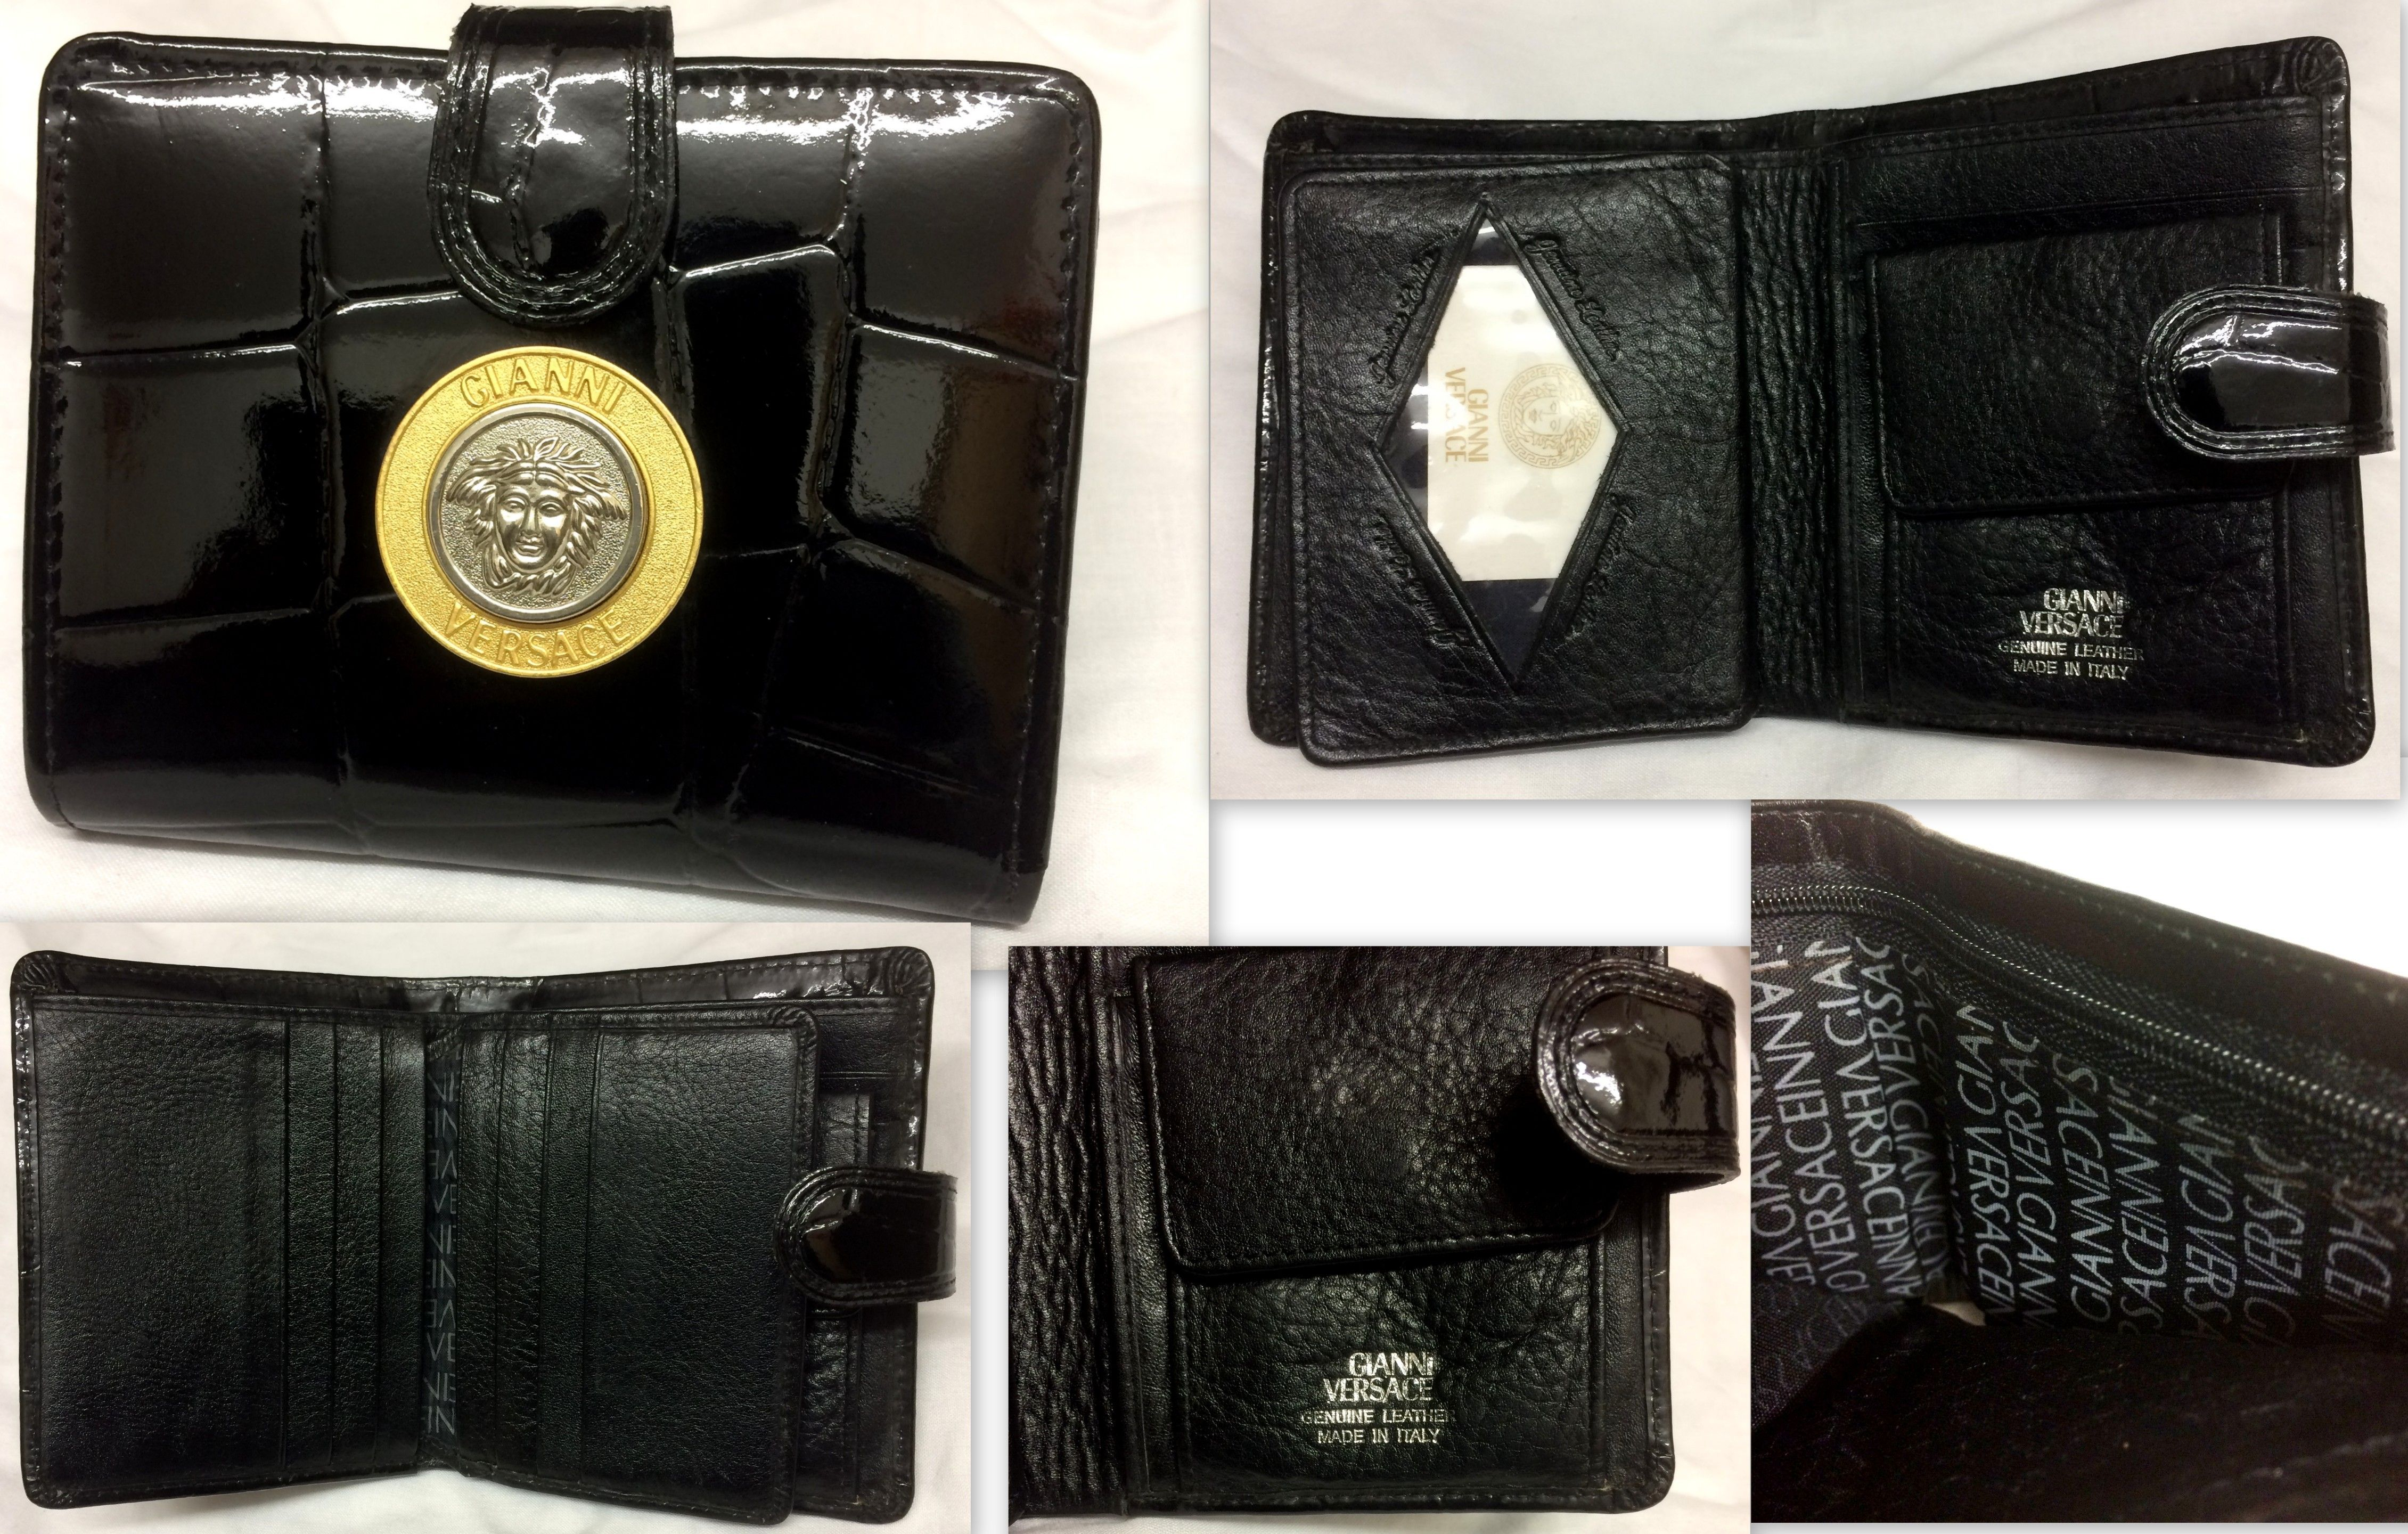 04f5cf22eb Gianni Versace 90s moc croc leather wallet | Gianni Versace 80s ...